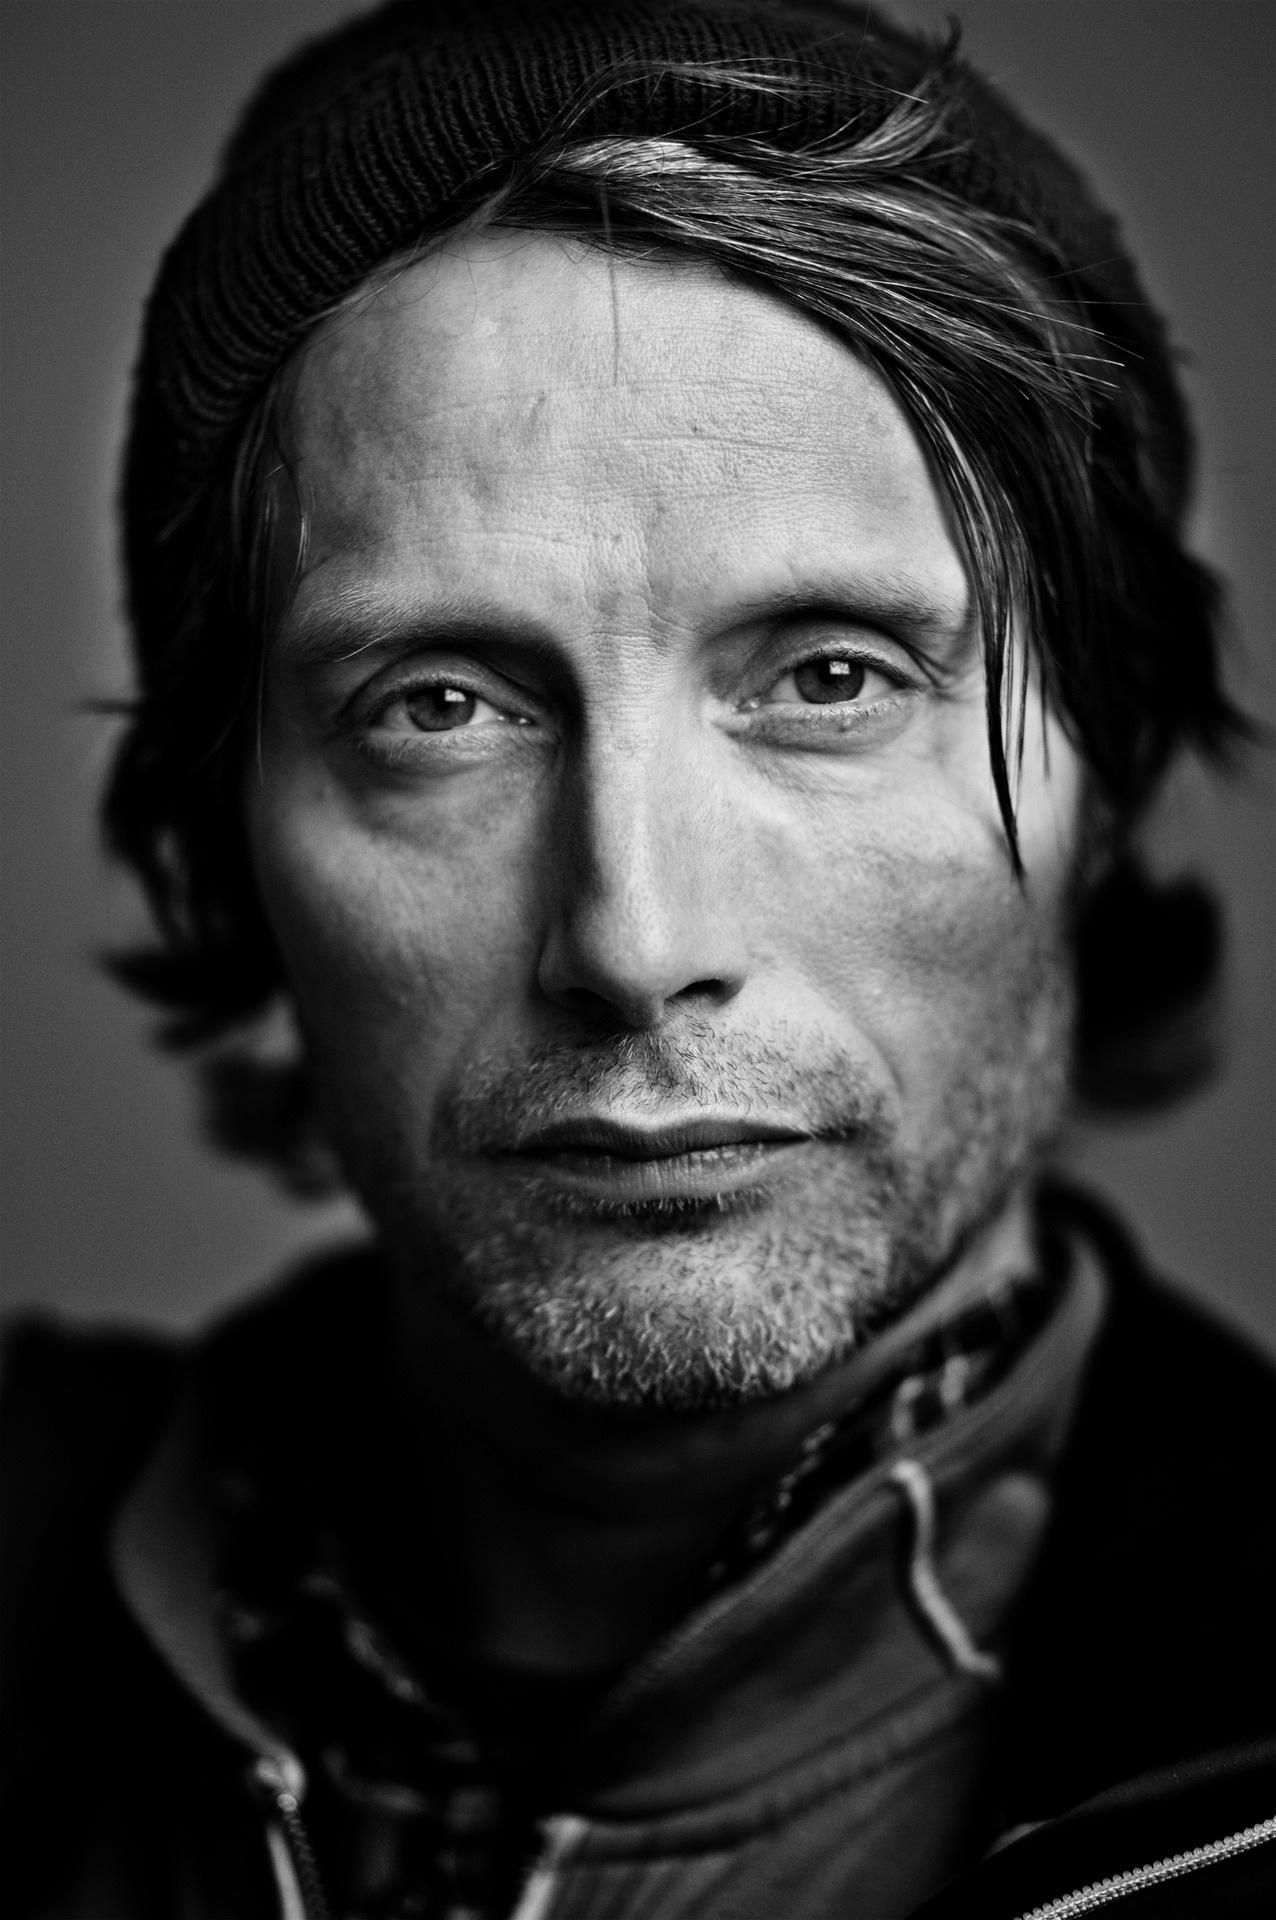 Man portrait face mads mikkelsen black white